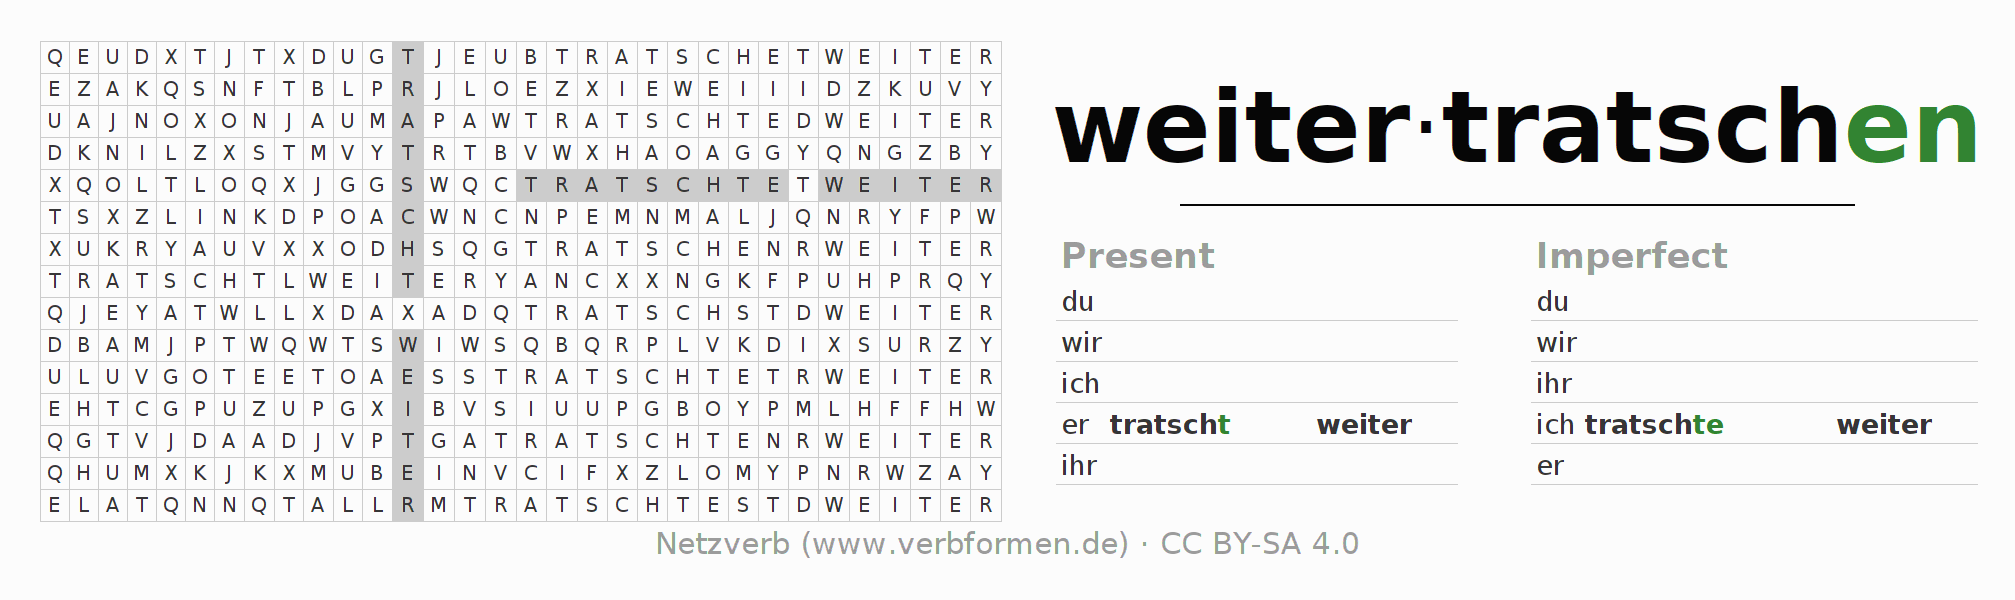 Word search puzzle for the conjugation of the verb weitertratschen